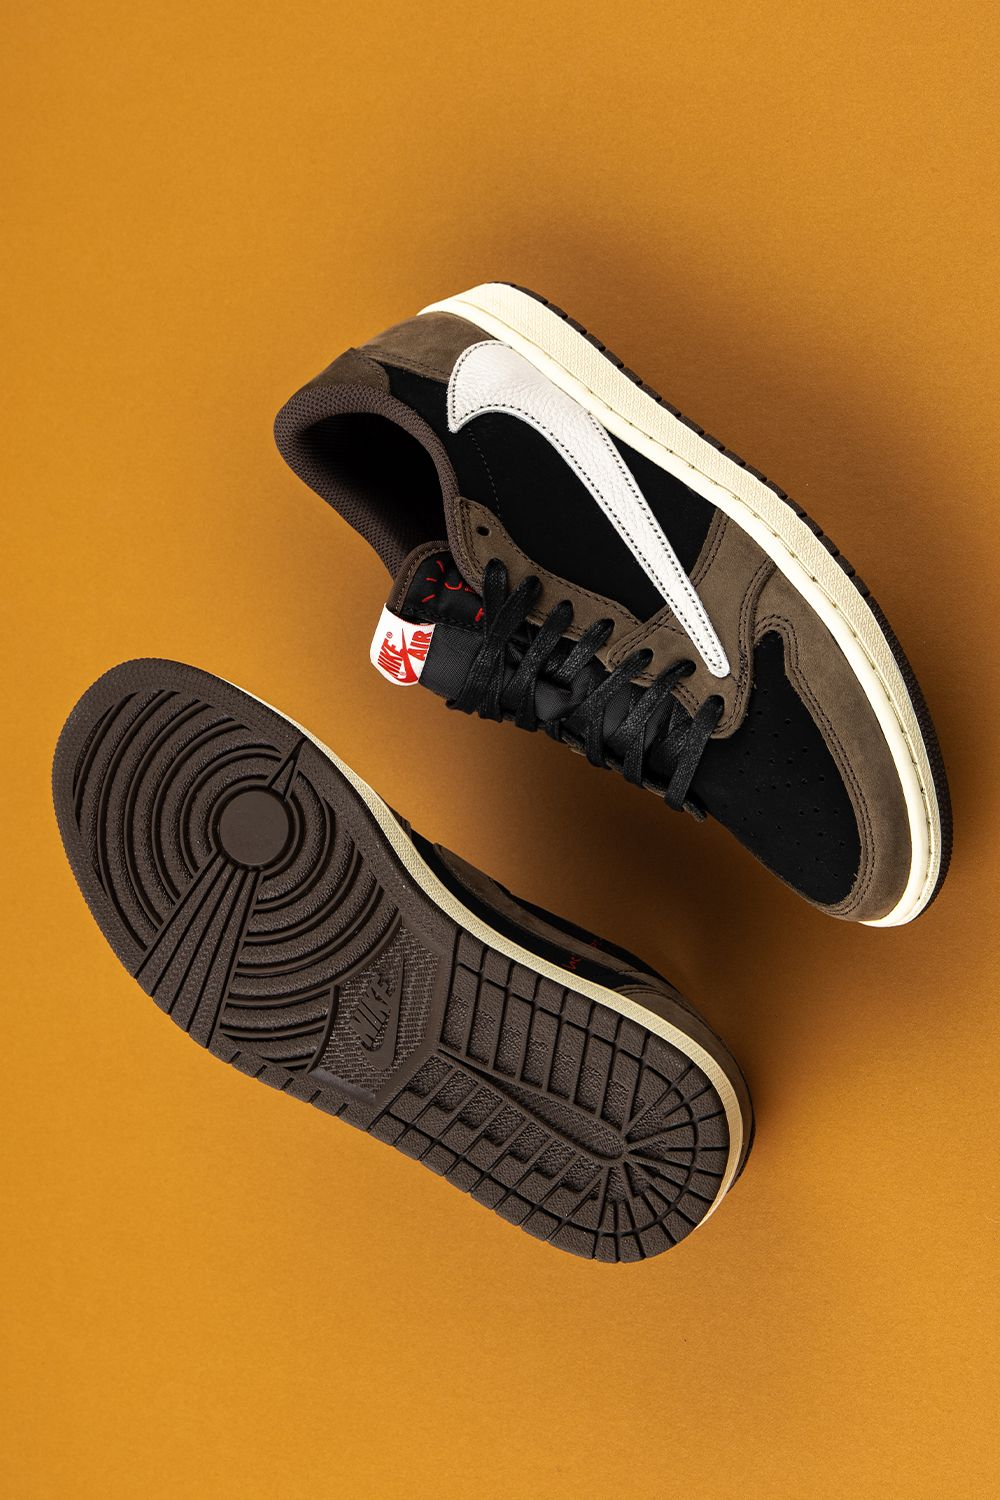 Air Jordan 1 Low Travis Scott Cq4277 001 2019 With Images